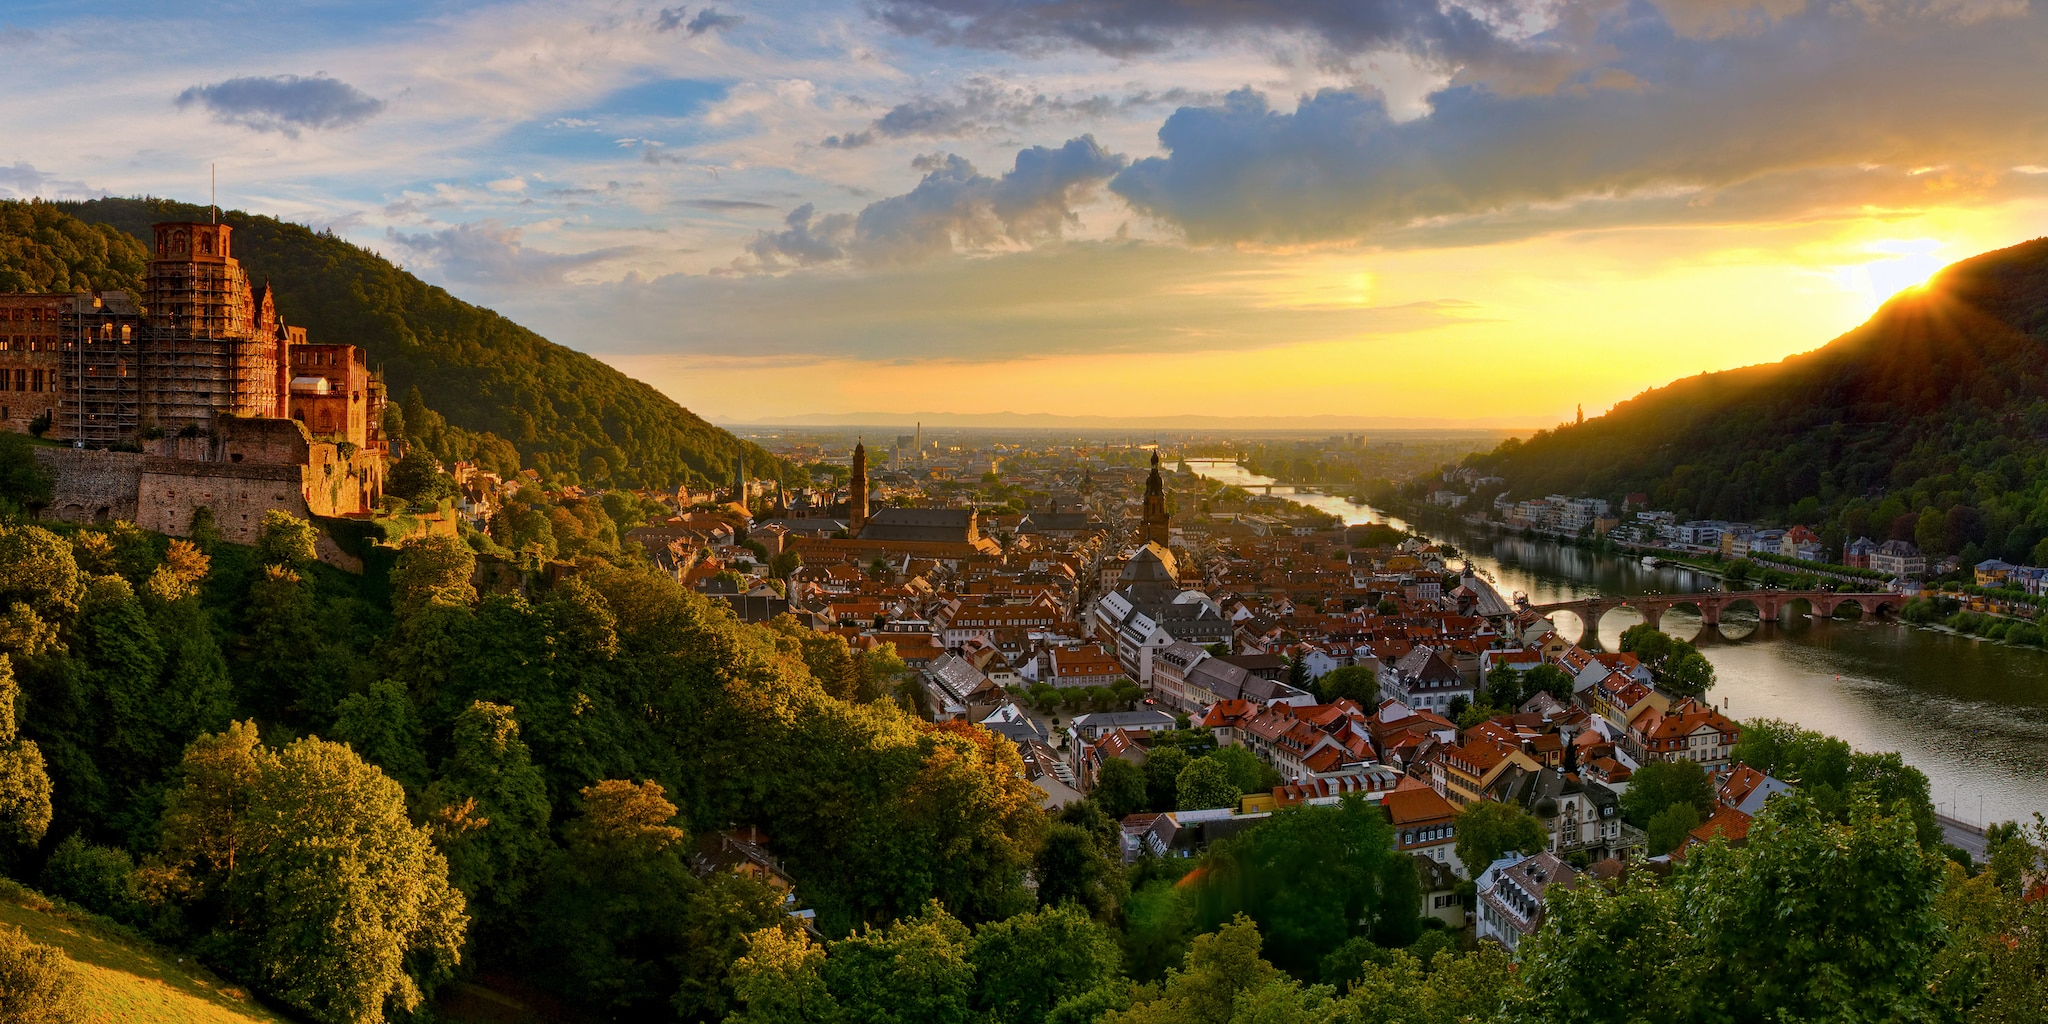 Heidelberg is one stop on the Germany tour